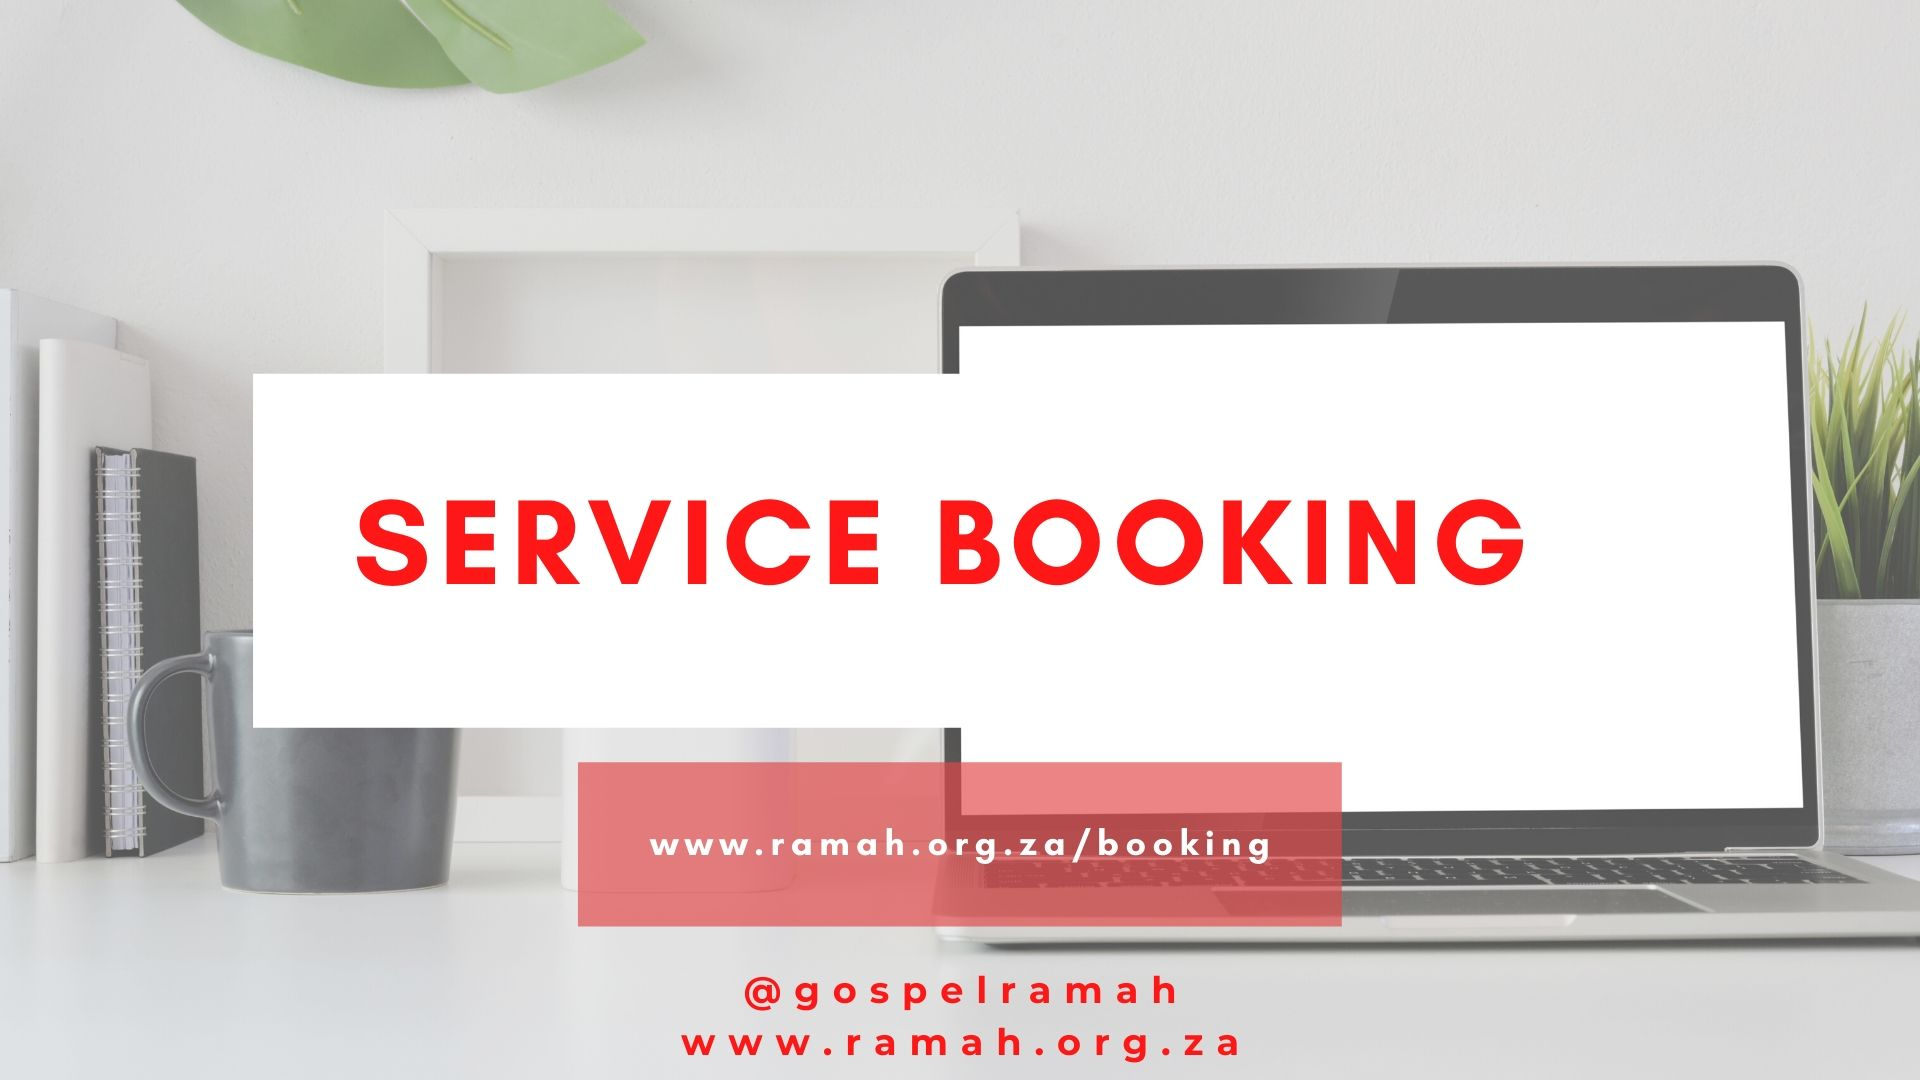 Service Booking